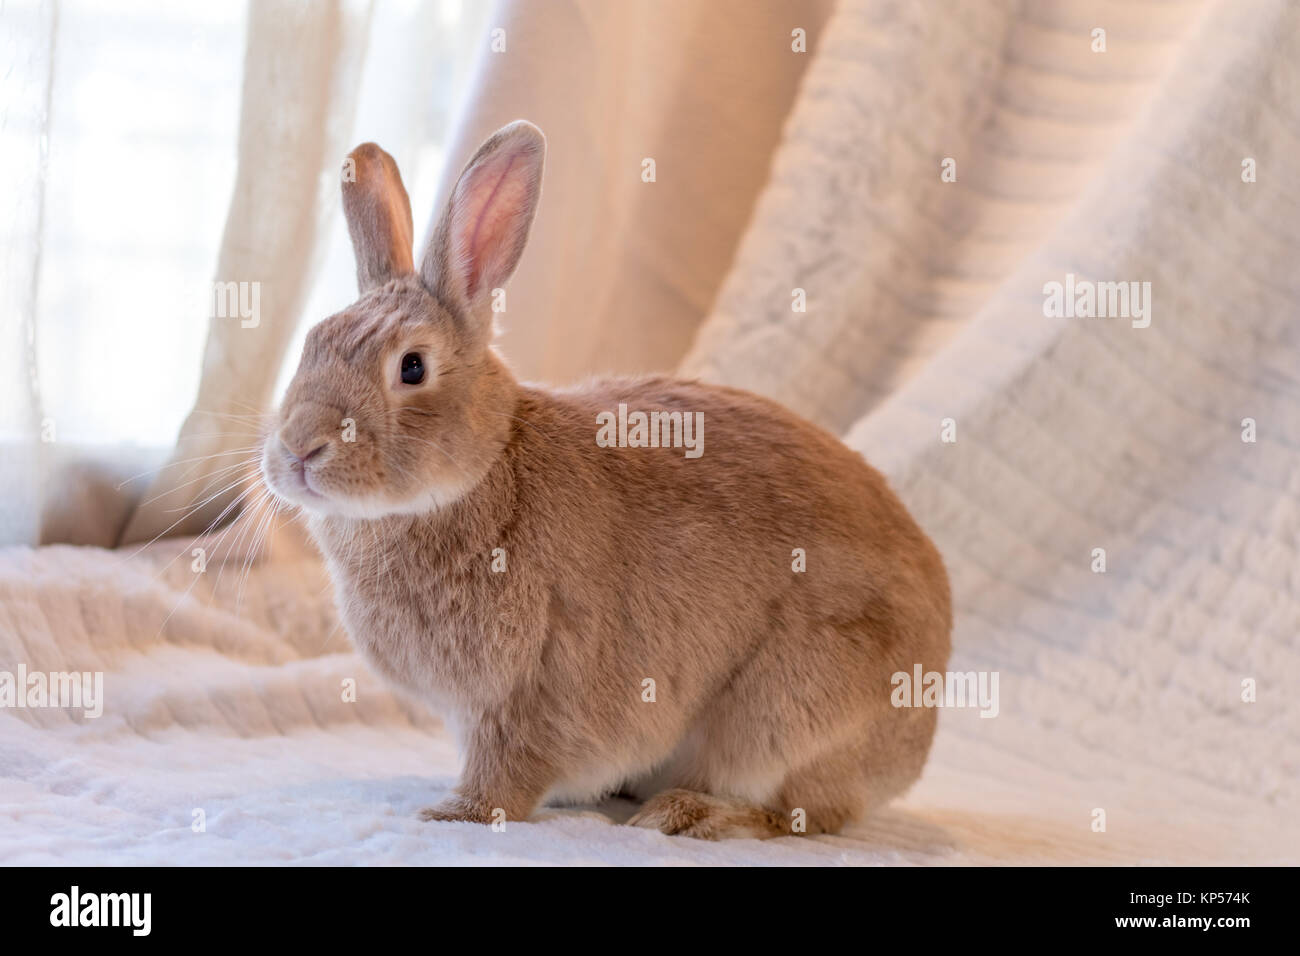 Beautiful tan and rufous domestic bunny rabbit surrounded by plush fabrics in muted palette - Stock Image